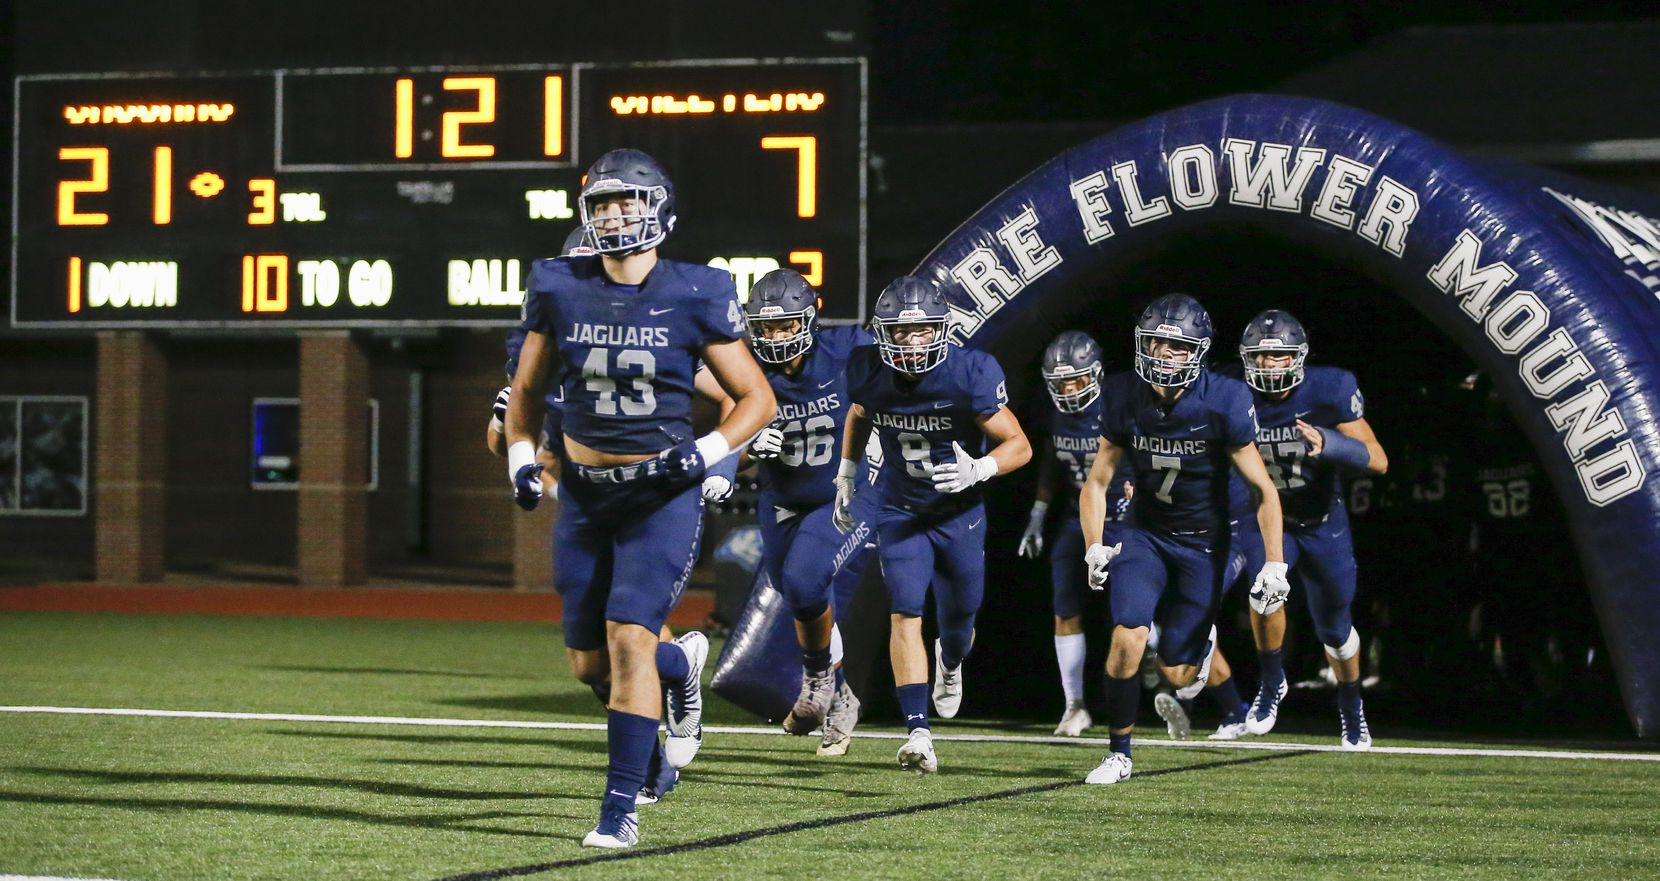 Flower Mound takes the field for the second half a high school football game against Mesquite at Flower Mound High School, Friday, August 27, 2021. (Brandon Wade/Special Contributor)